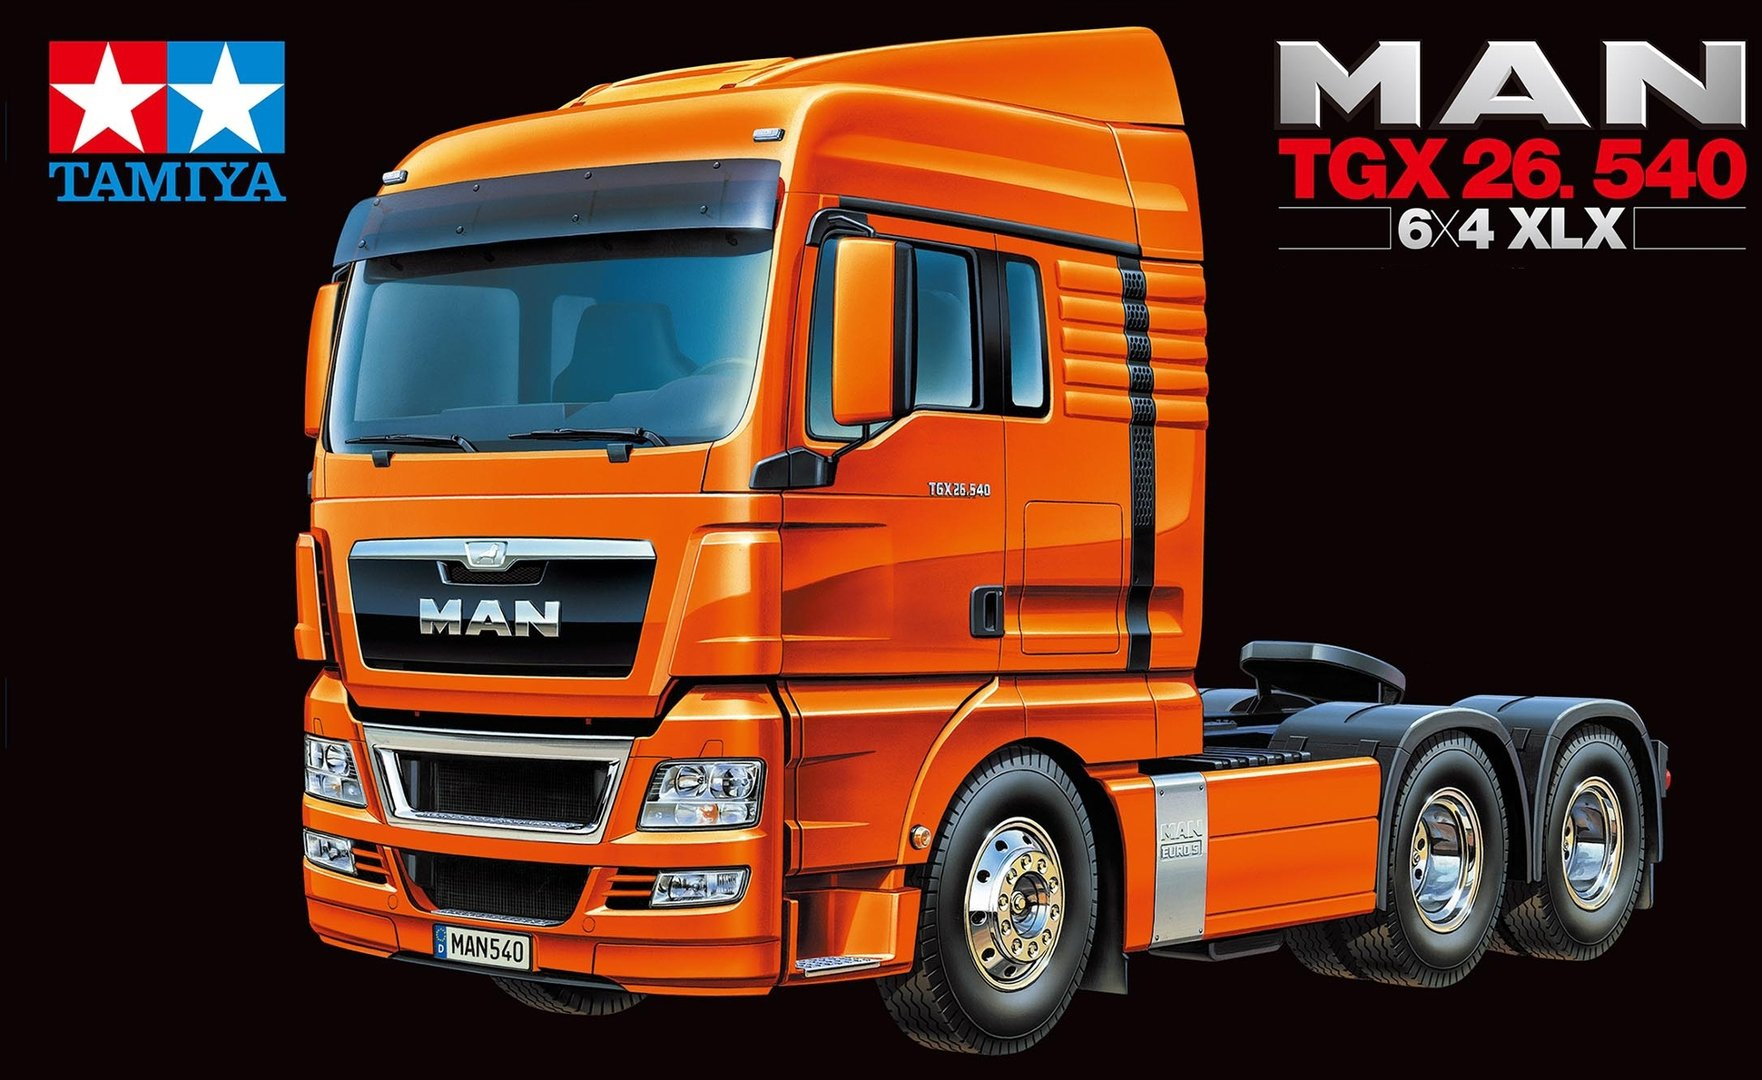 1 14 man tgx 6x4 xlx euro5 2013 rs modellbau shop. Black Bedroom Furniture Sets. Home Design Ideas